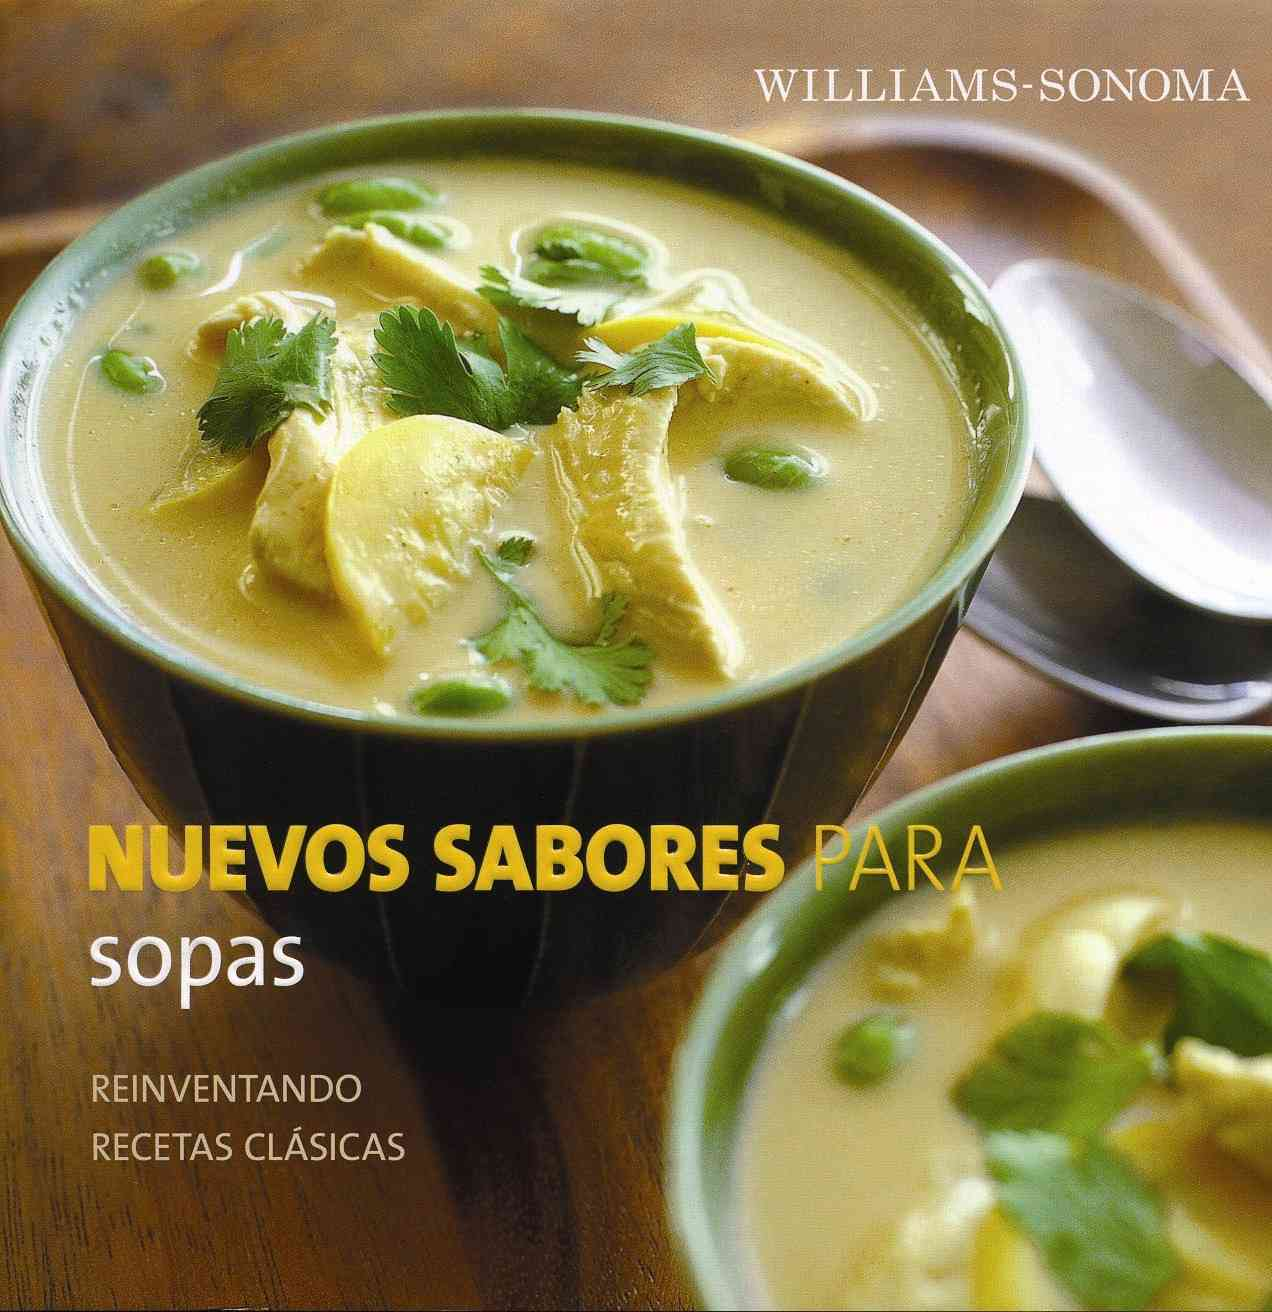 Nuevos sabores para sopas/ New Flavors for Soups By Ried, Adam/ Sears, Kate (PHT)/ L., Laura Cordera (TRN)